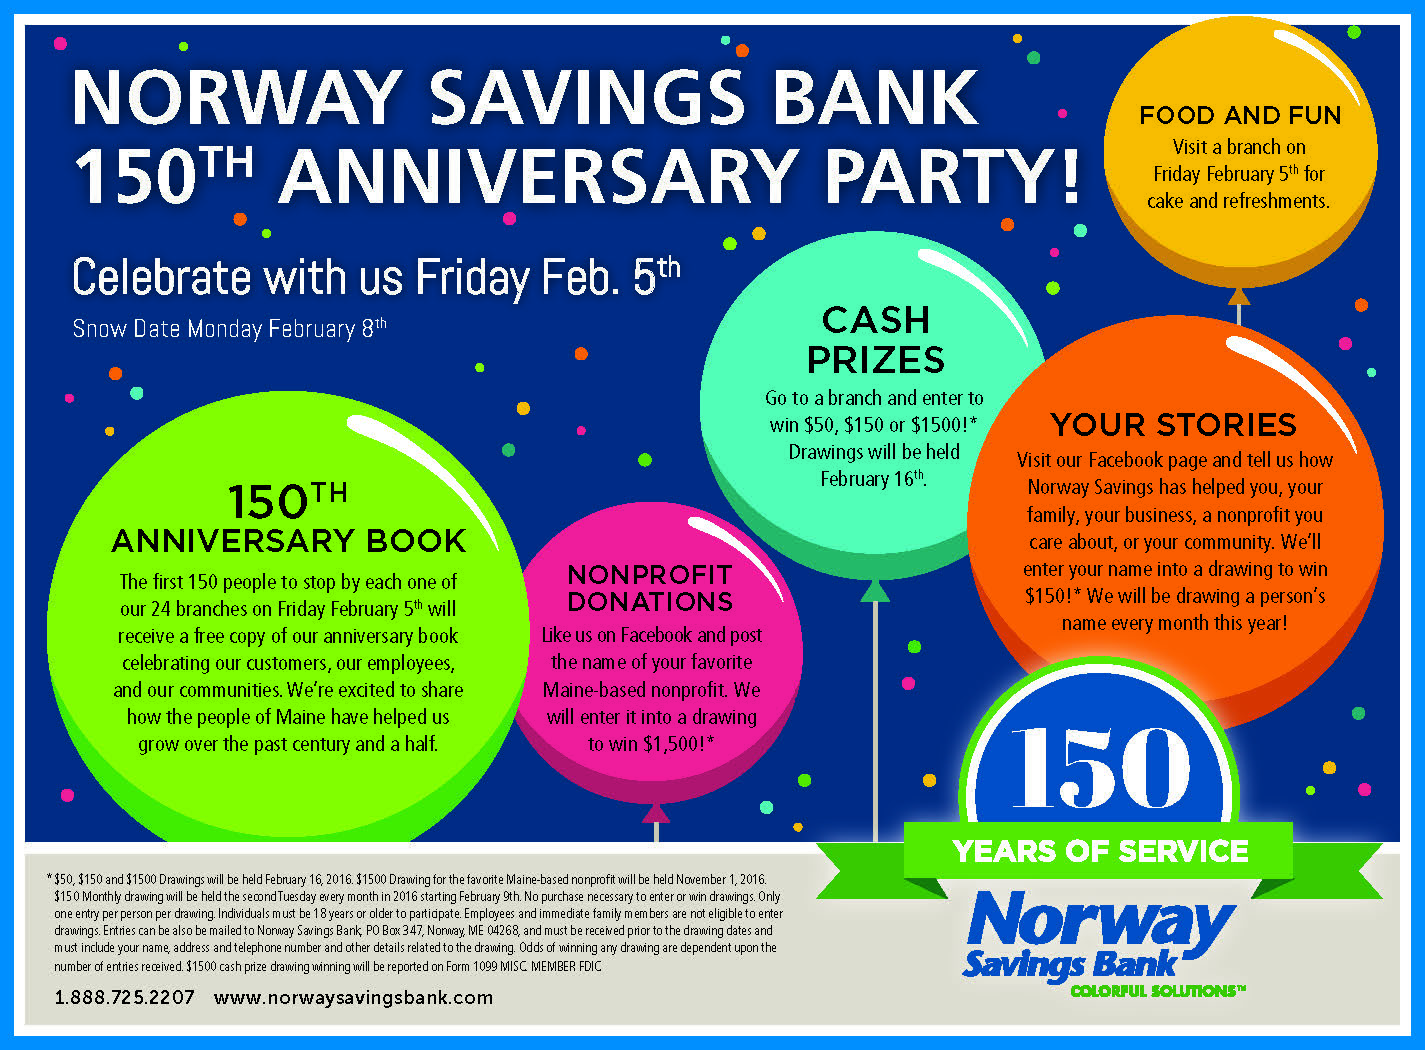 http://www.norwaysavingsbank.com/